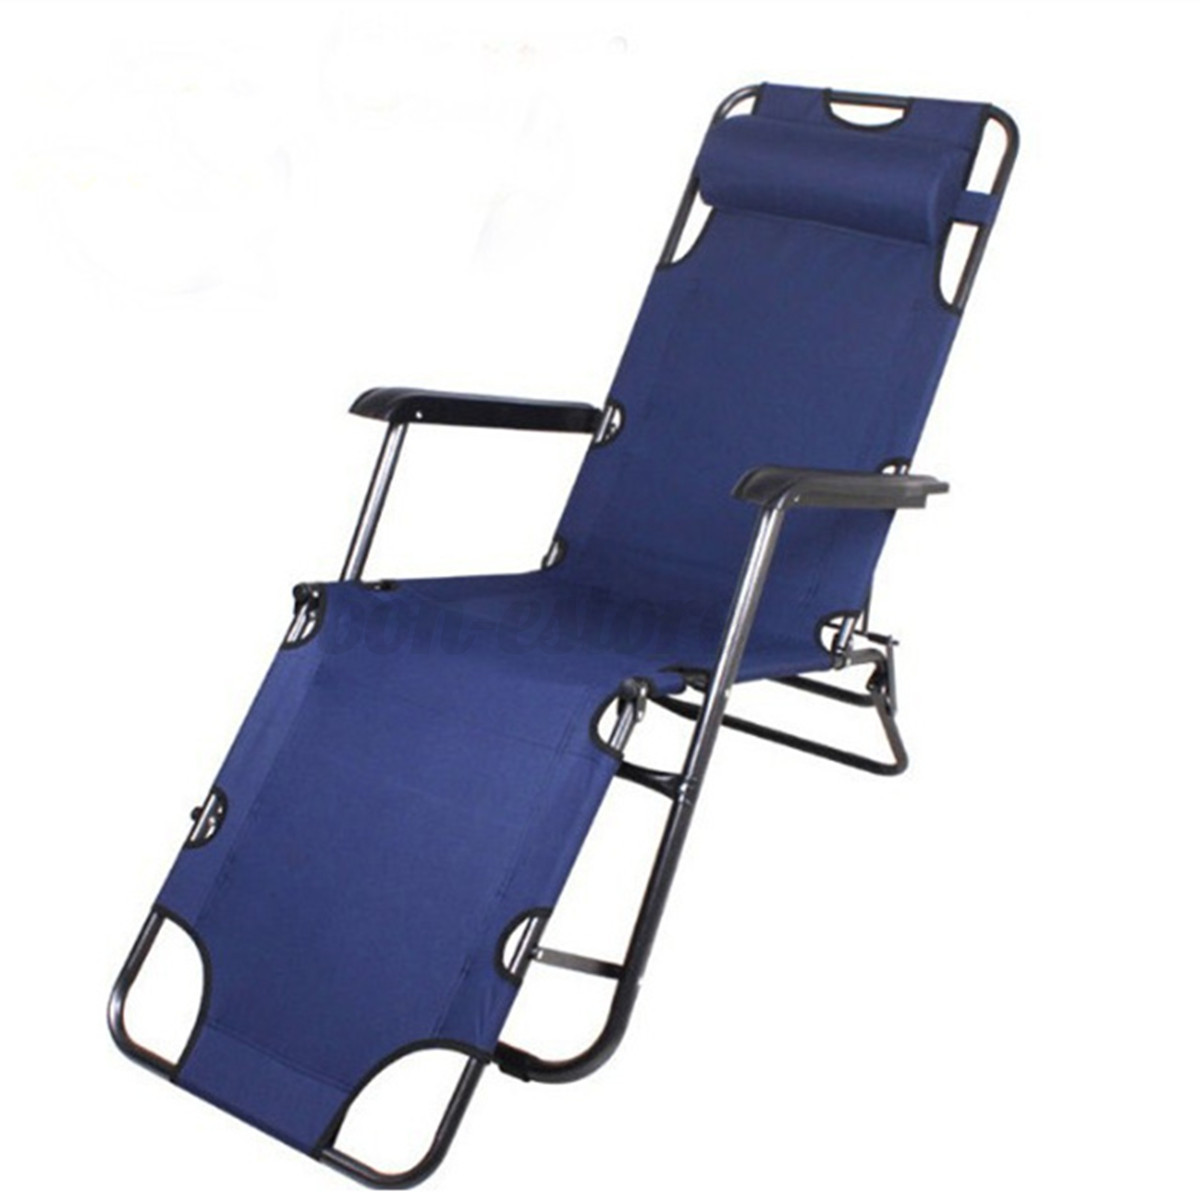 Outdoor Folding Reclining Beach Sun Patio Chaise Lounge Chair Pool Lawn Lounger